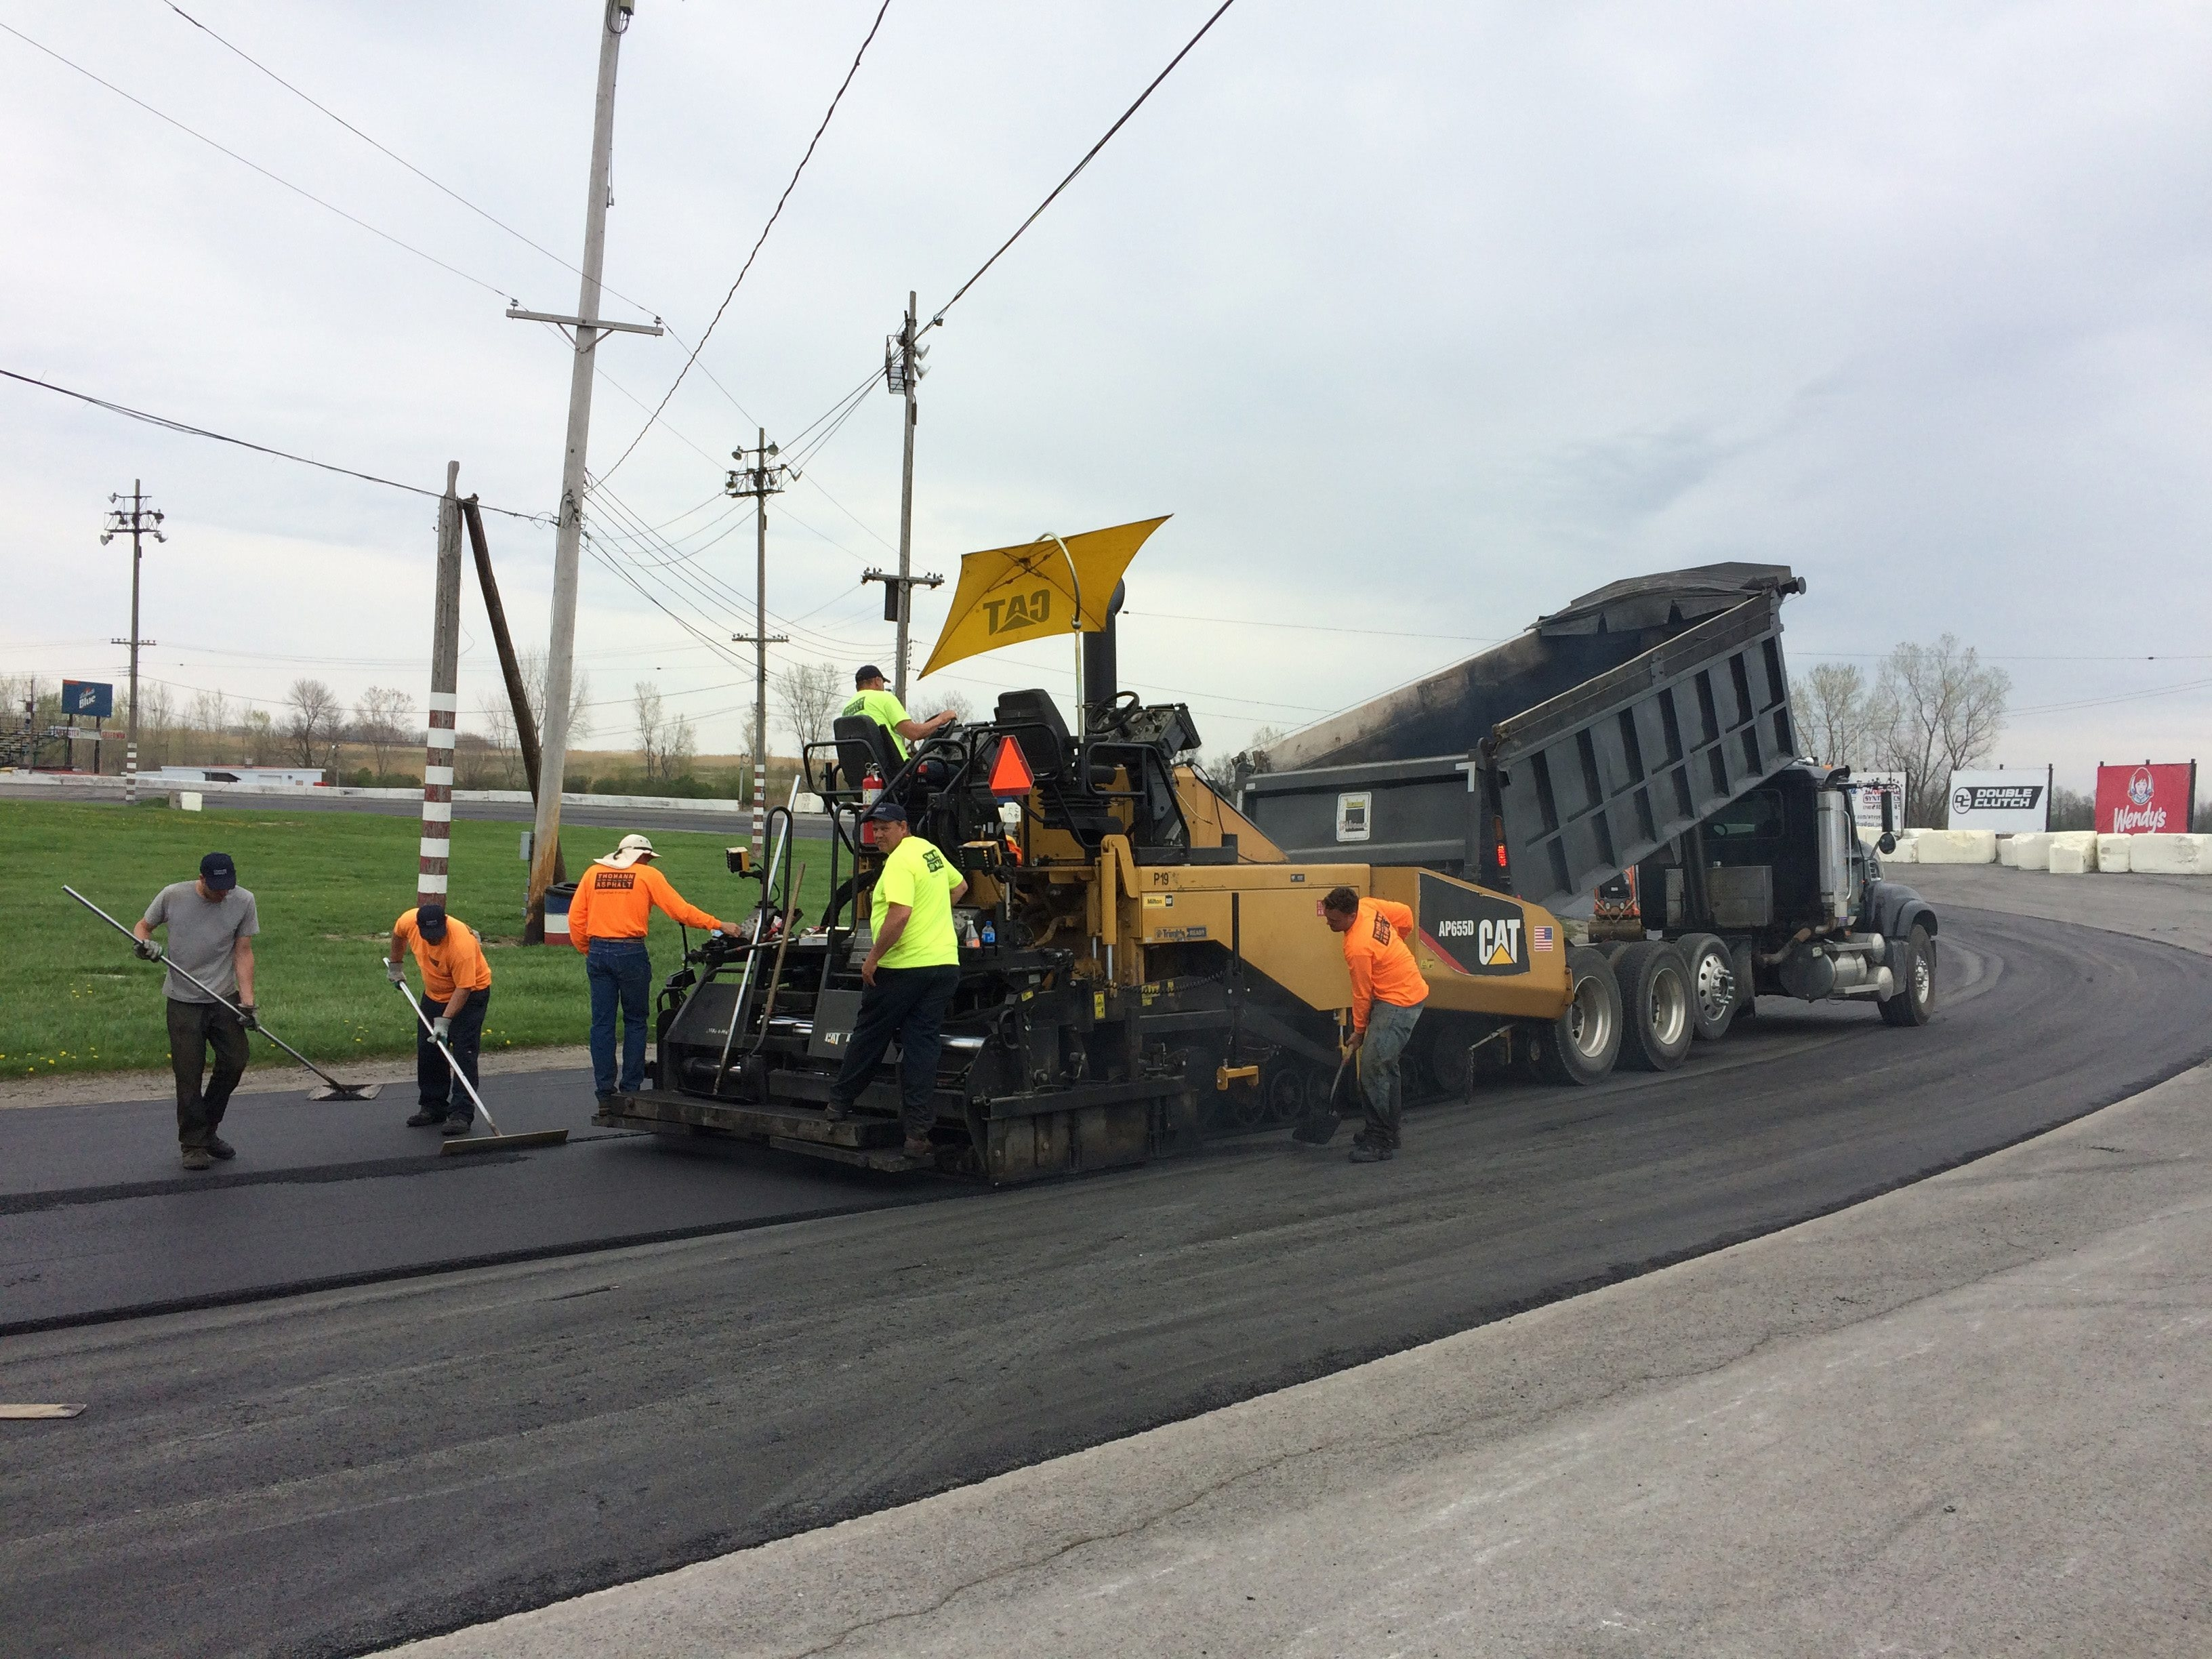 Crews lay down new asphalt on the track's oval at the Lancaster National Speedway – just one of the improvements underway at the racetrack, with more planned as finances permit.